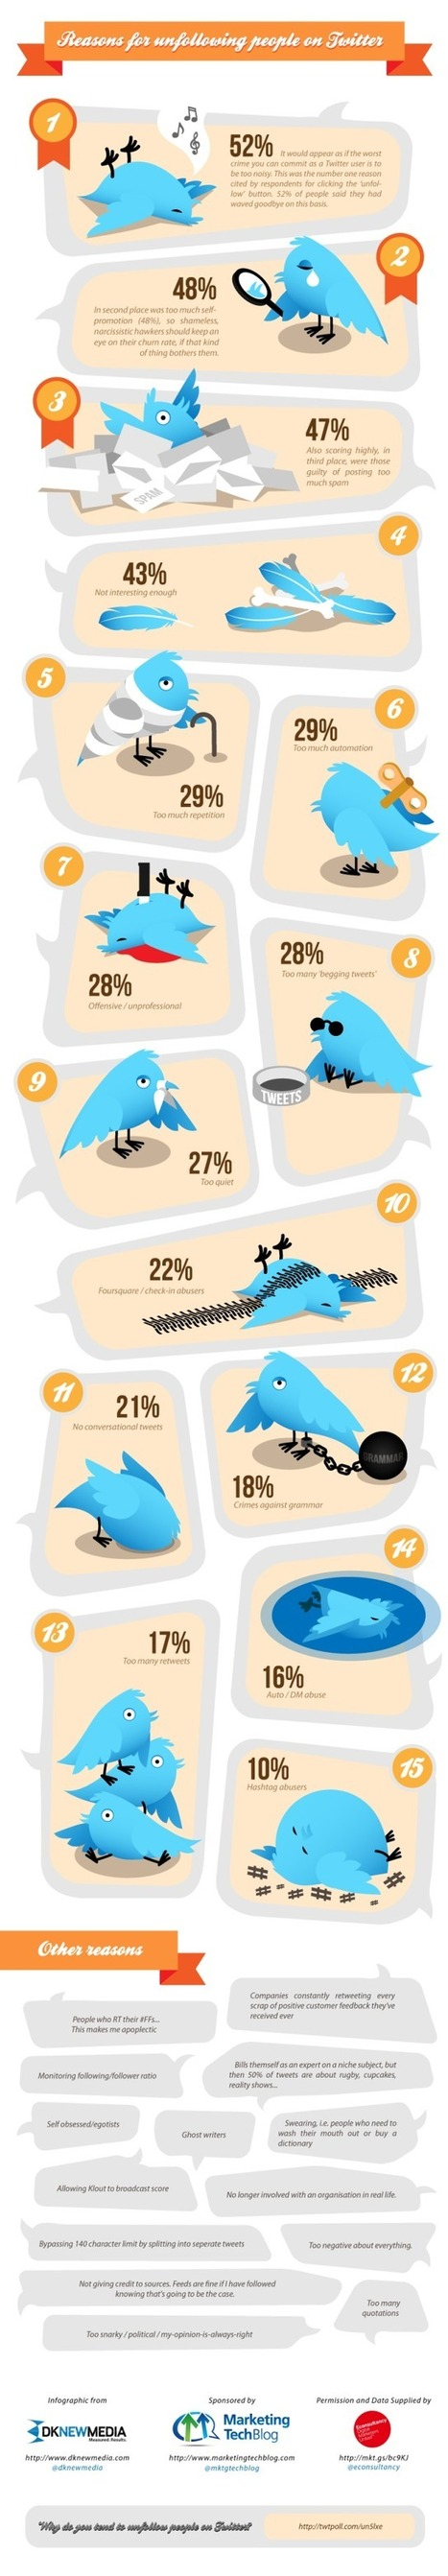 15 Reasons People Unfollow You on Twitter | Web Development and Design | Scoop.it